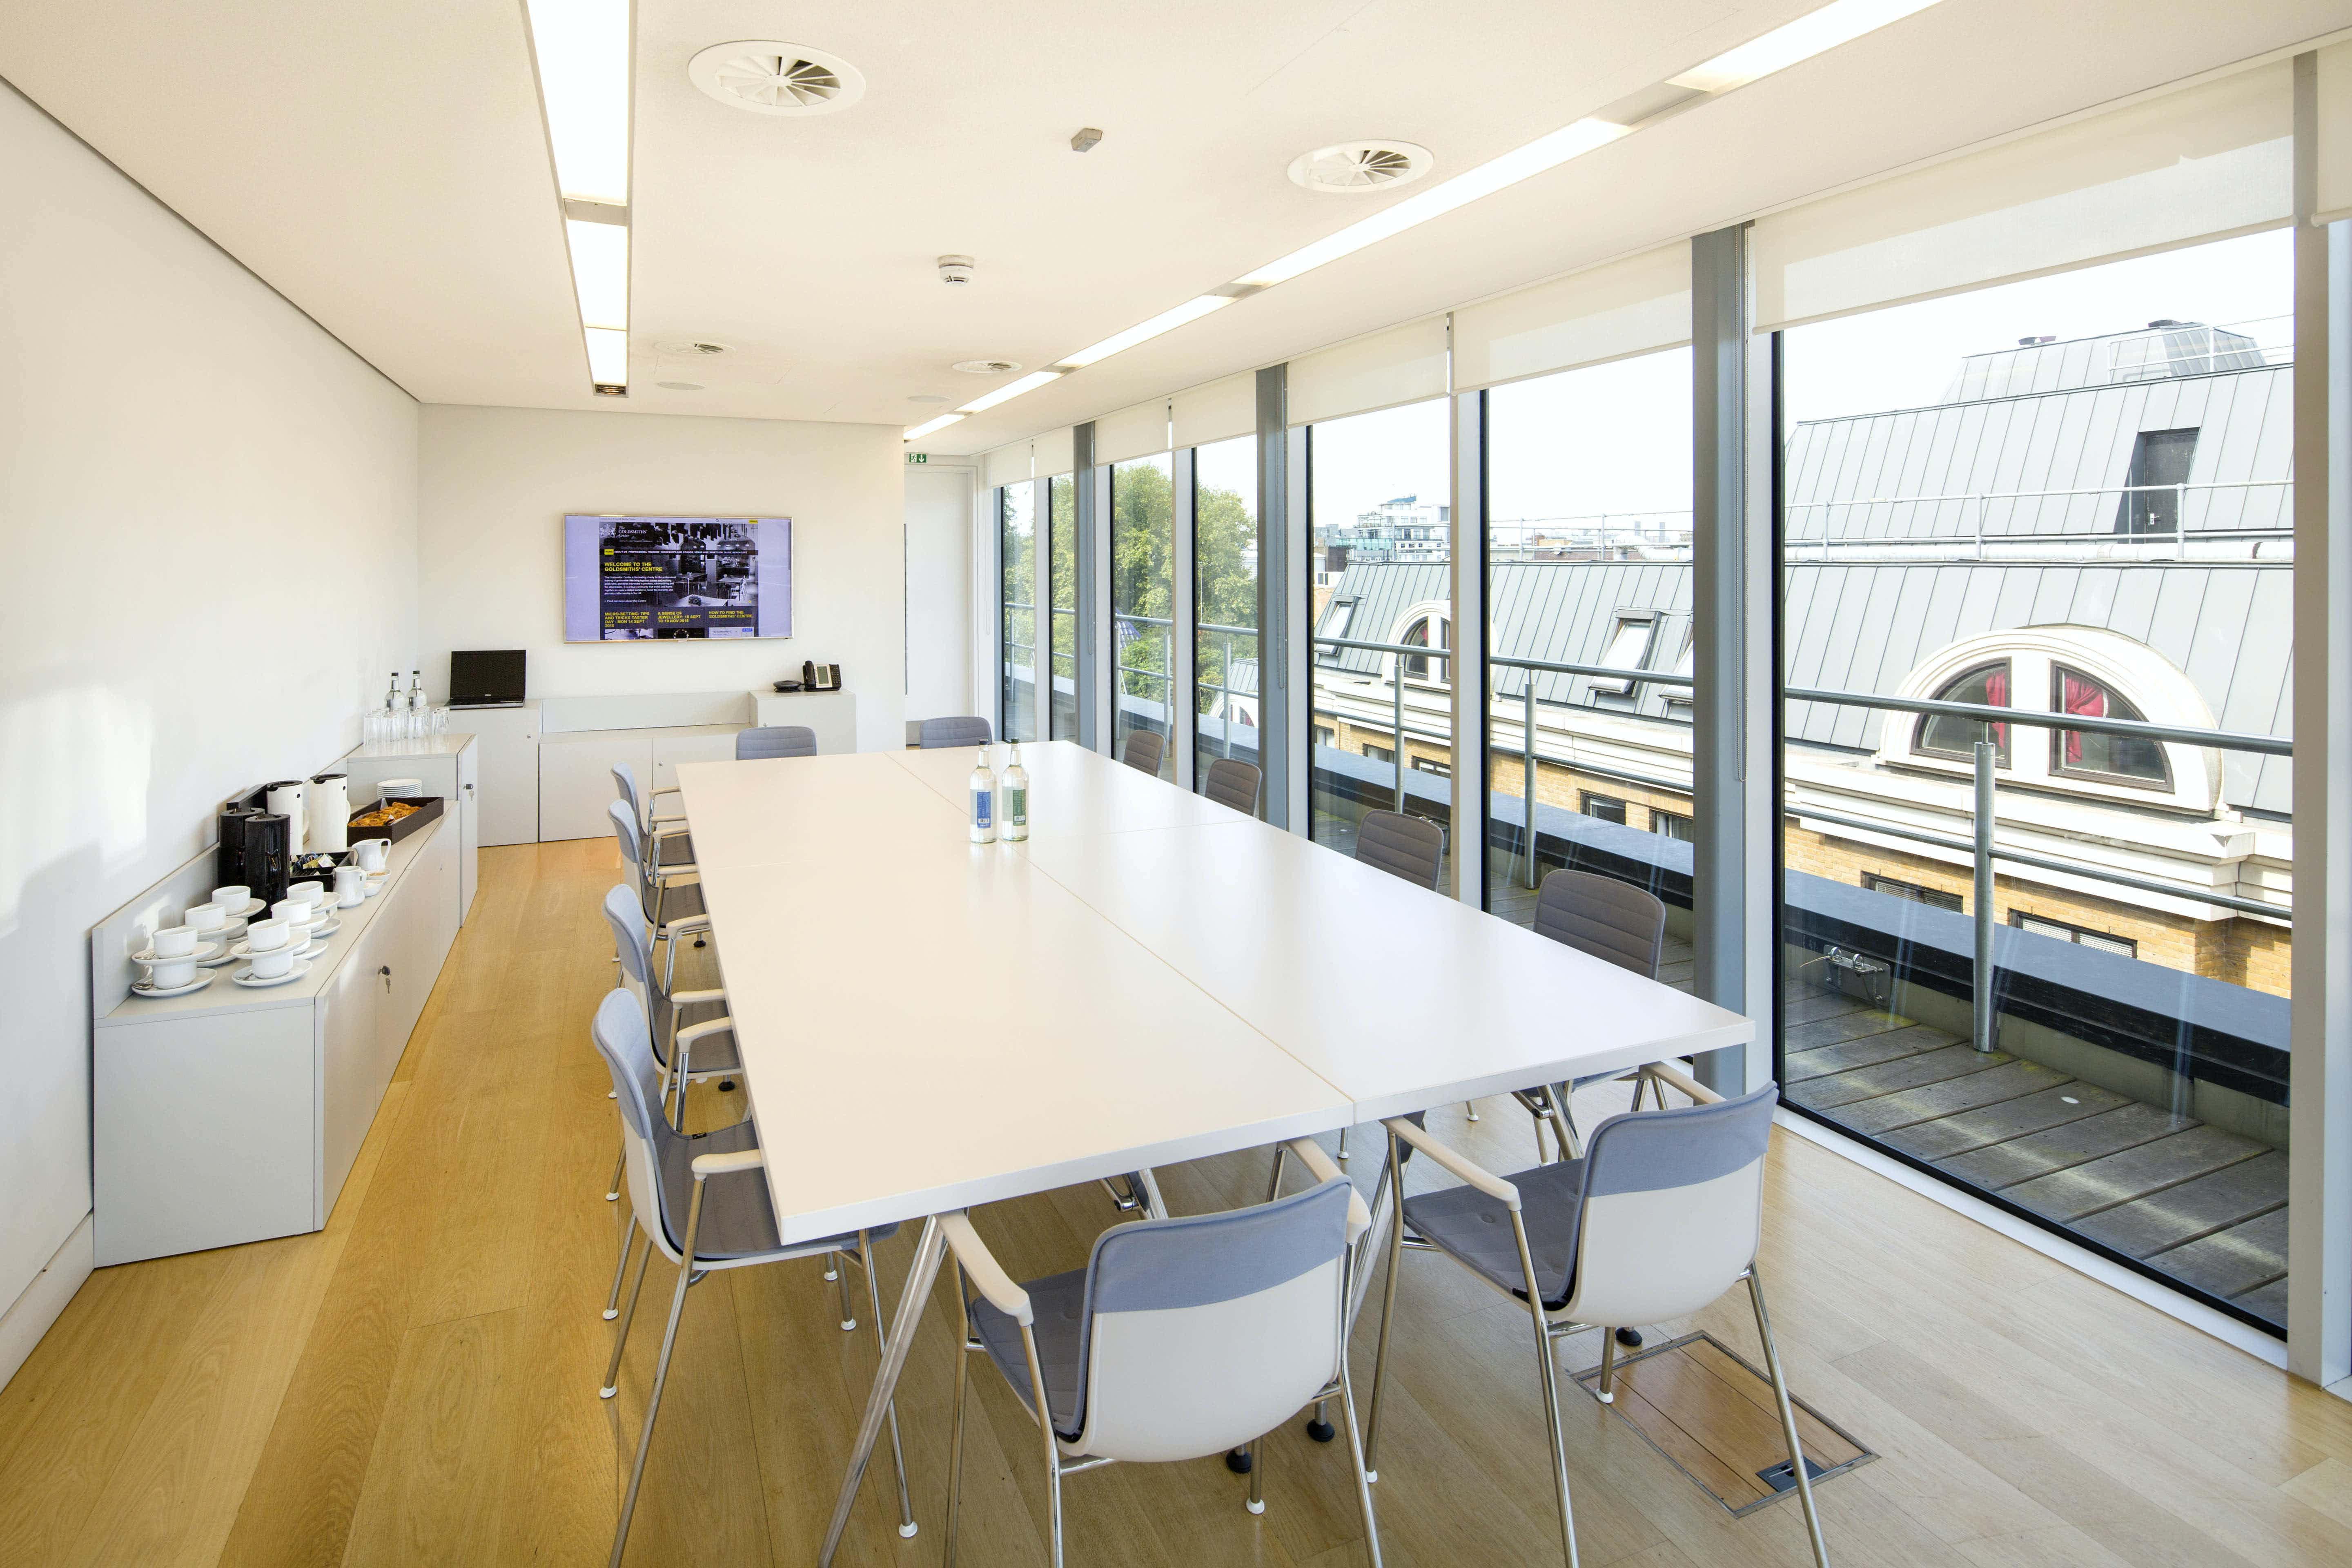 Agas Harding Board Room, The Goldsmiths' Centre